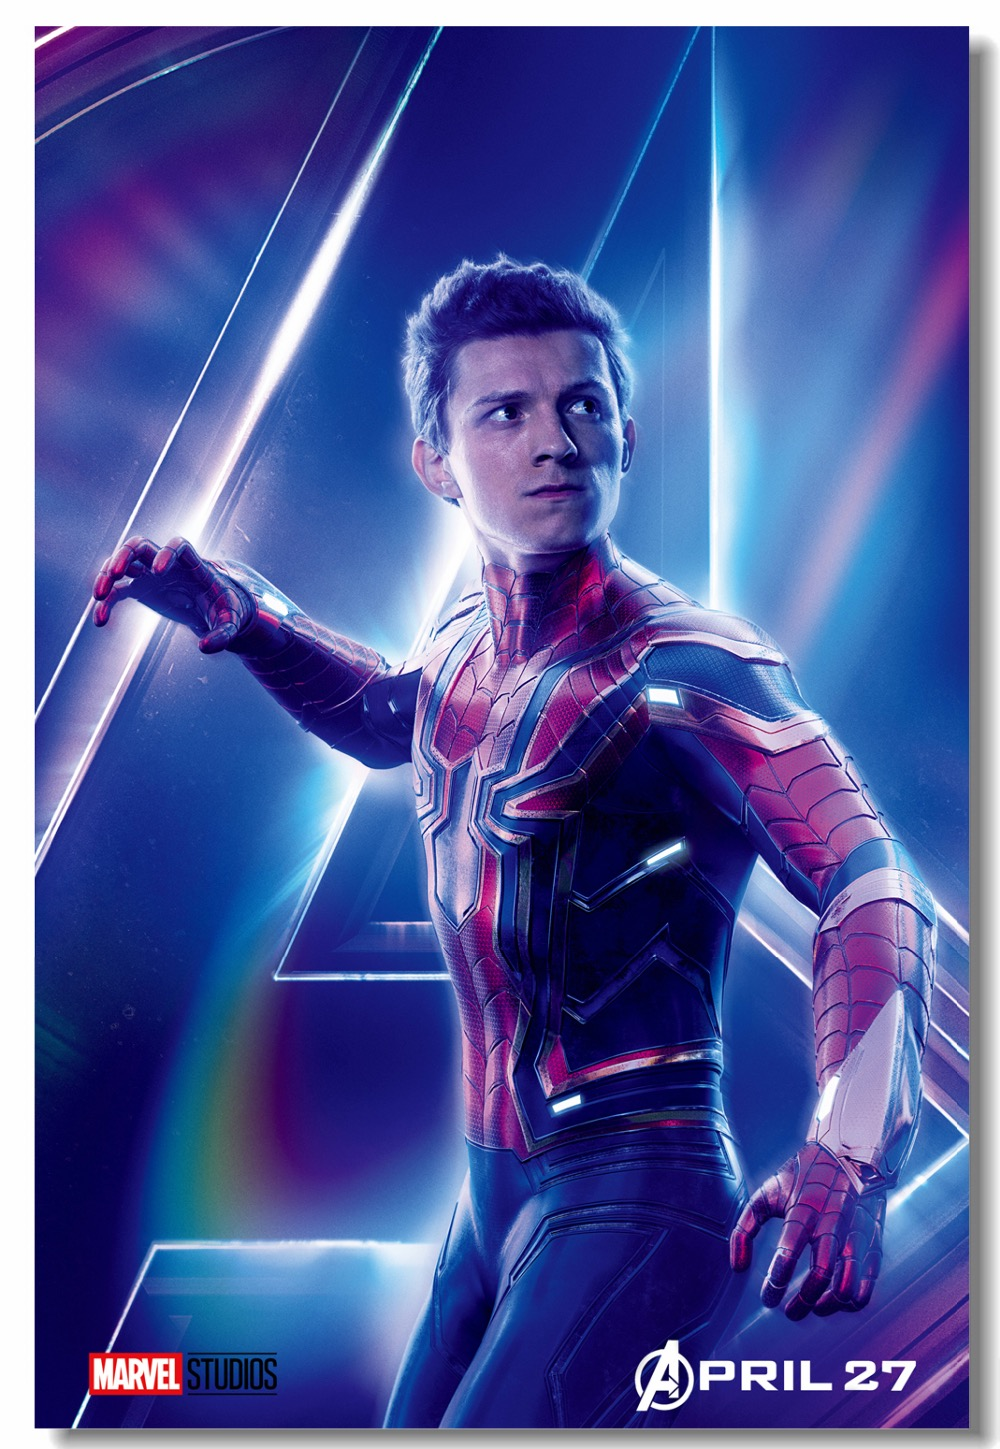 Us 5 99 25 Off Custom Canvas Wall Painting Tom Holland Poster Iron Spider Man Stickers Avengers Infinity War Wallpaper Living Room Mural 0842 In